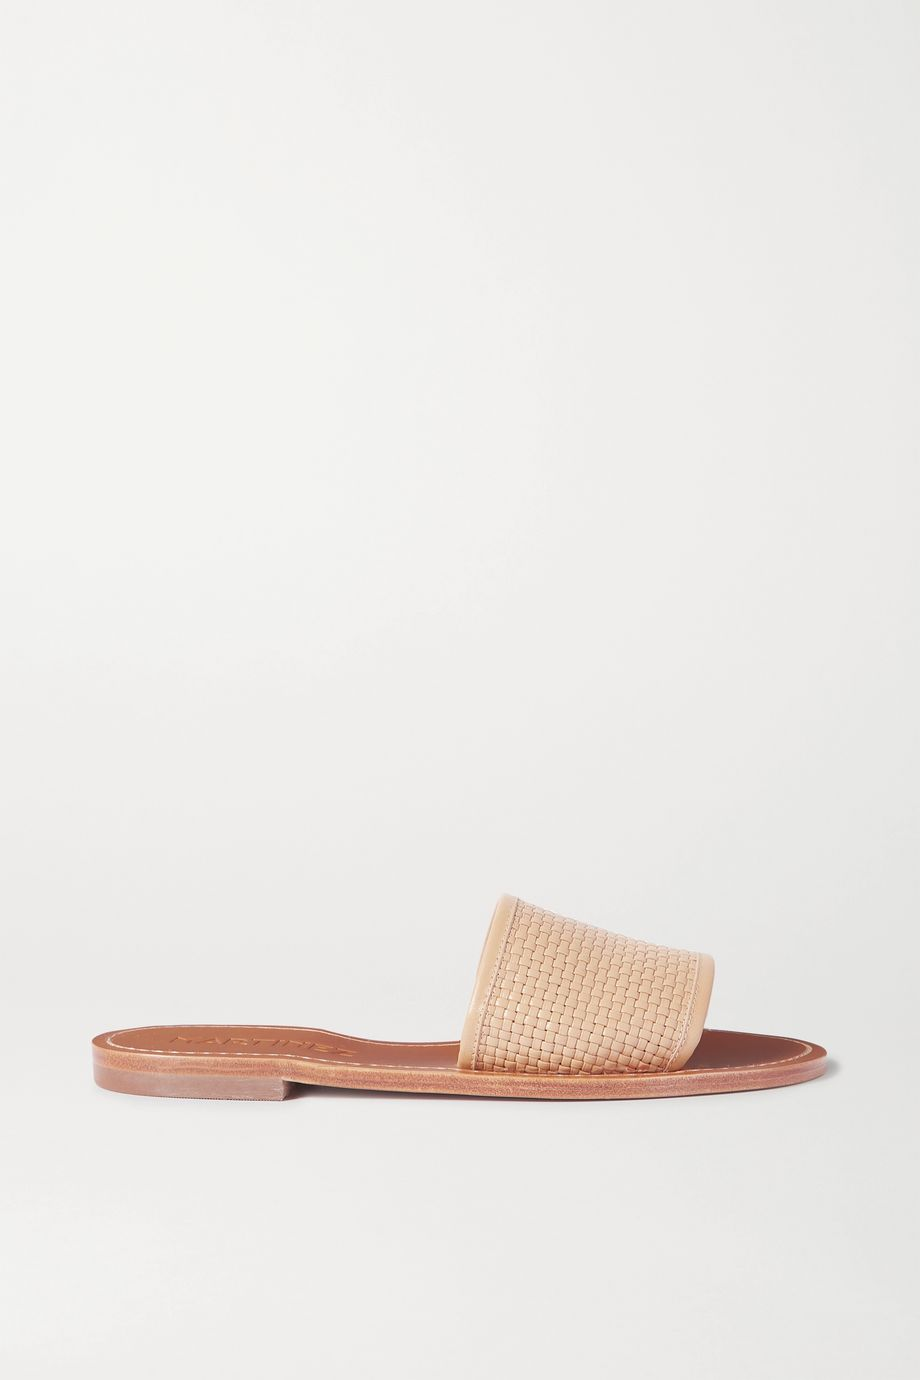 Souliers Martinez Playa Telar woven leather slides